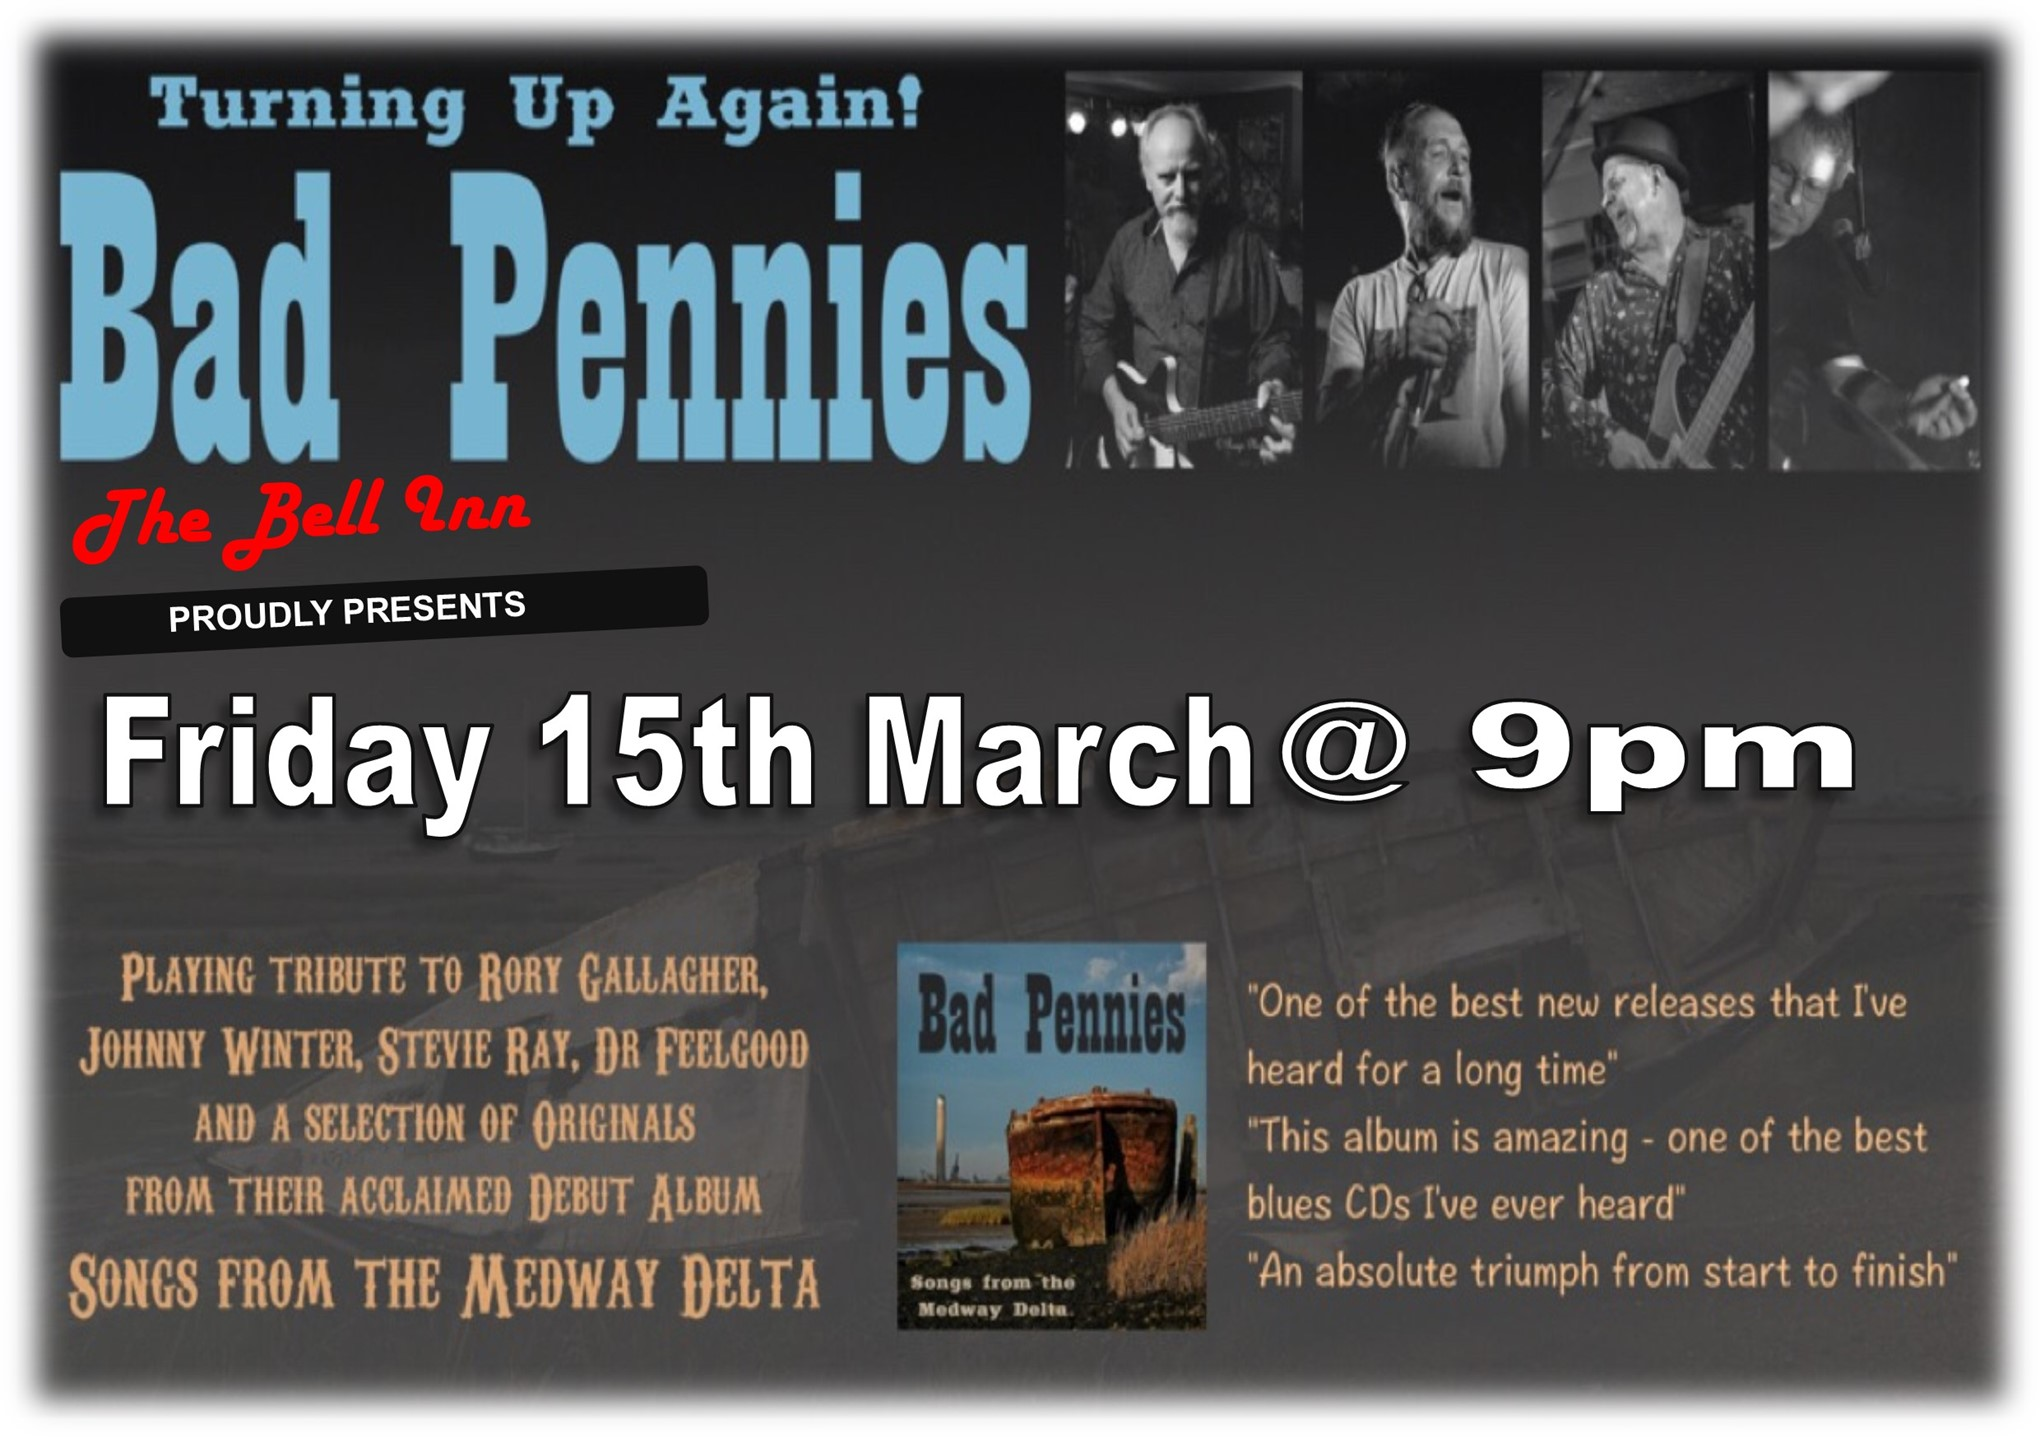 Live music with Bad Pennies